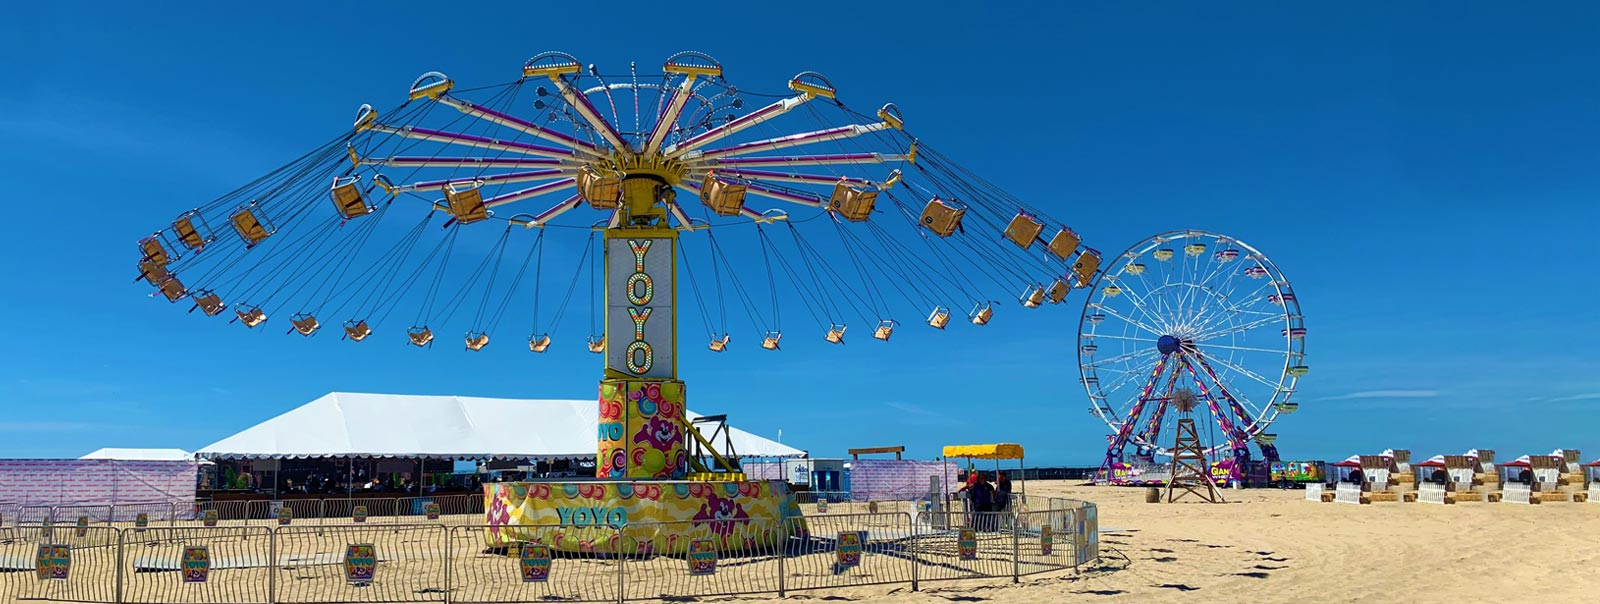 Helm & Sons Amusements - Providing Amusement Rides and Attractions